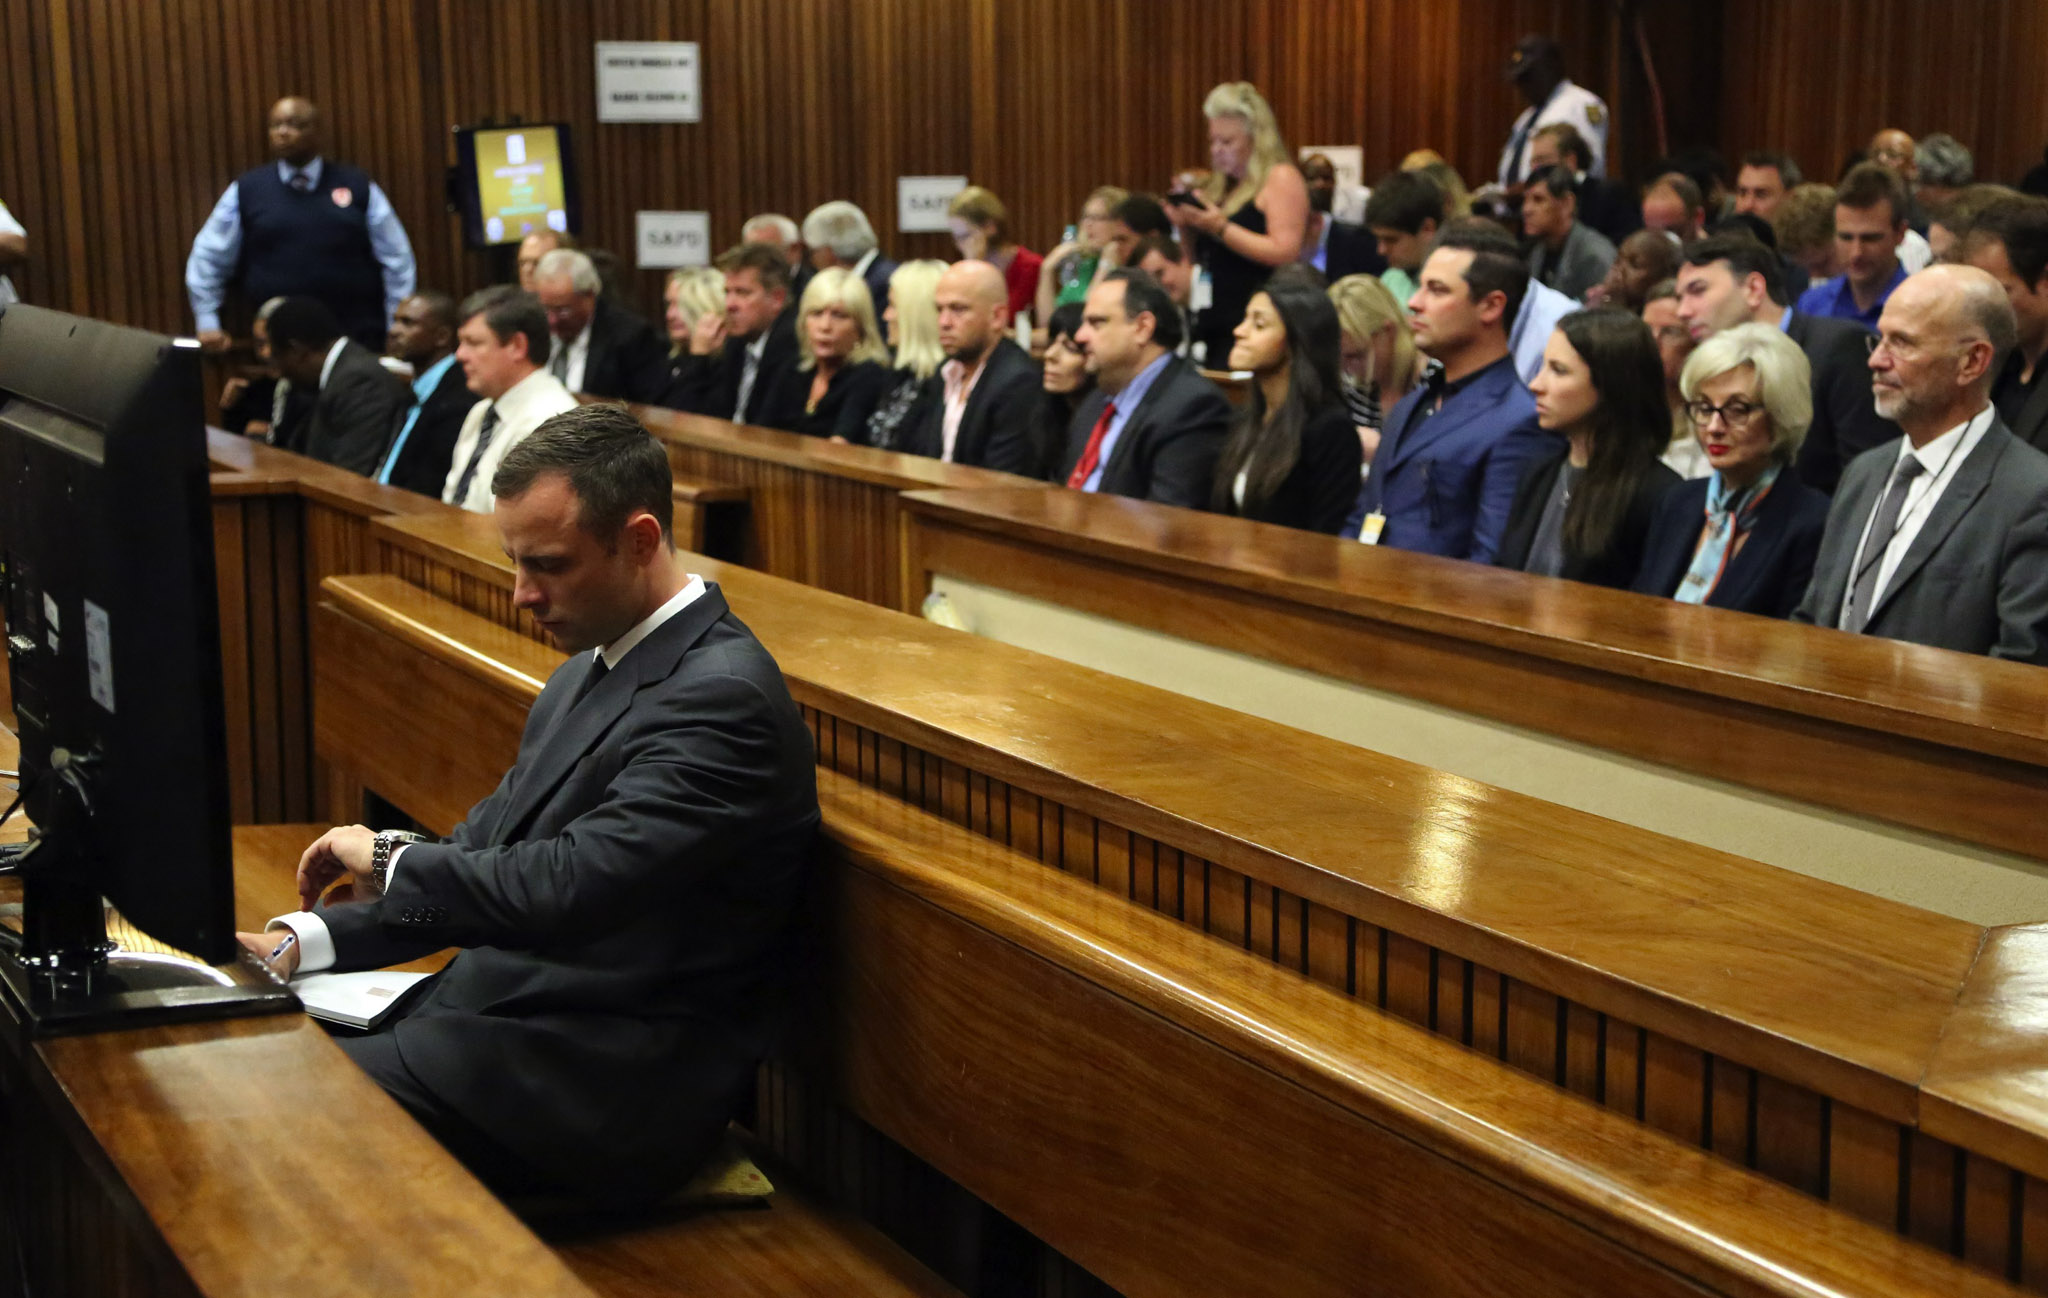 Accused South African Paralympic athlete Oscar Pistorius looks at his watch as the start of his trial is delayed at the high court in Pretoria, South Africa.,